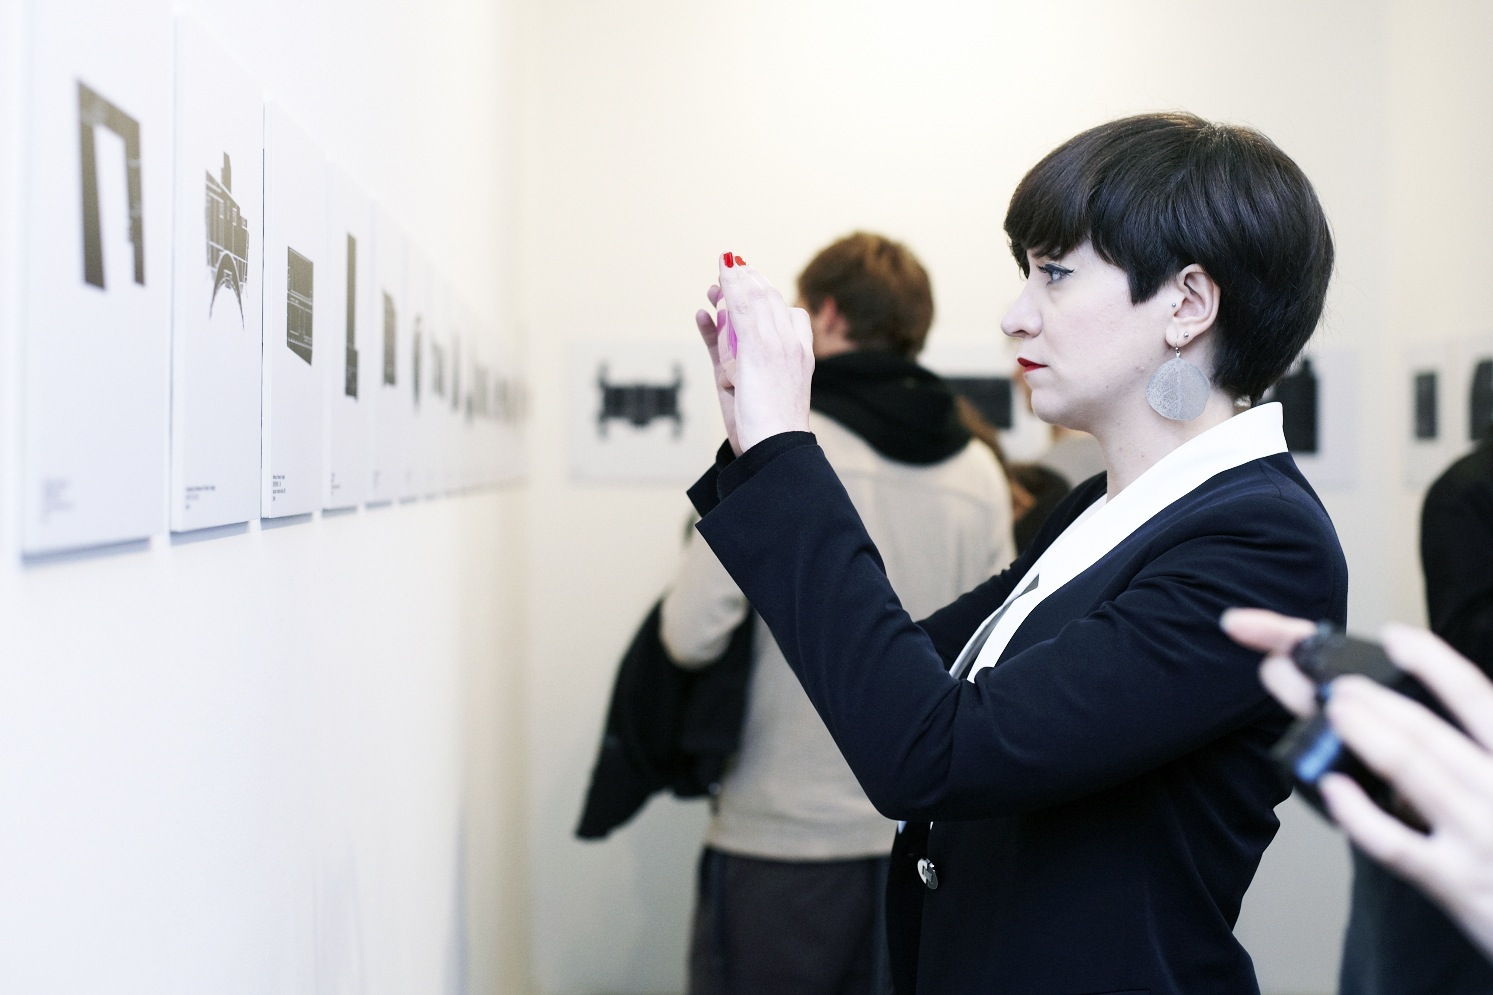 HKU|SSC - The Future of the Museum Opening 06